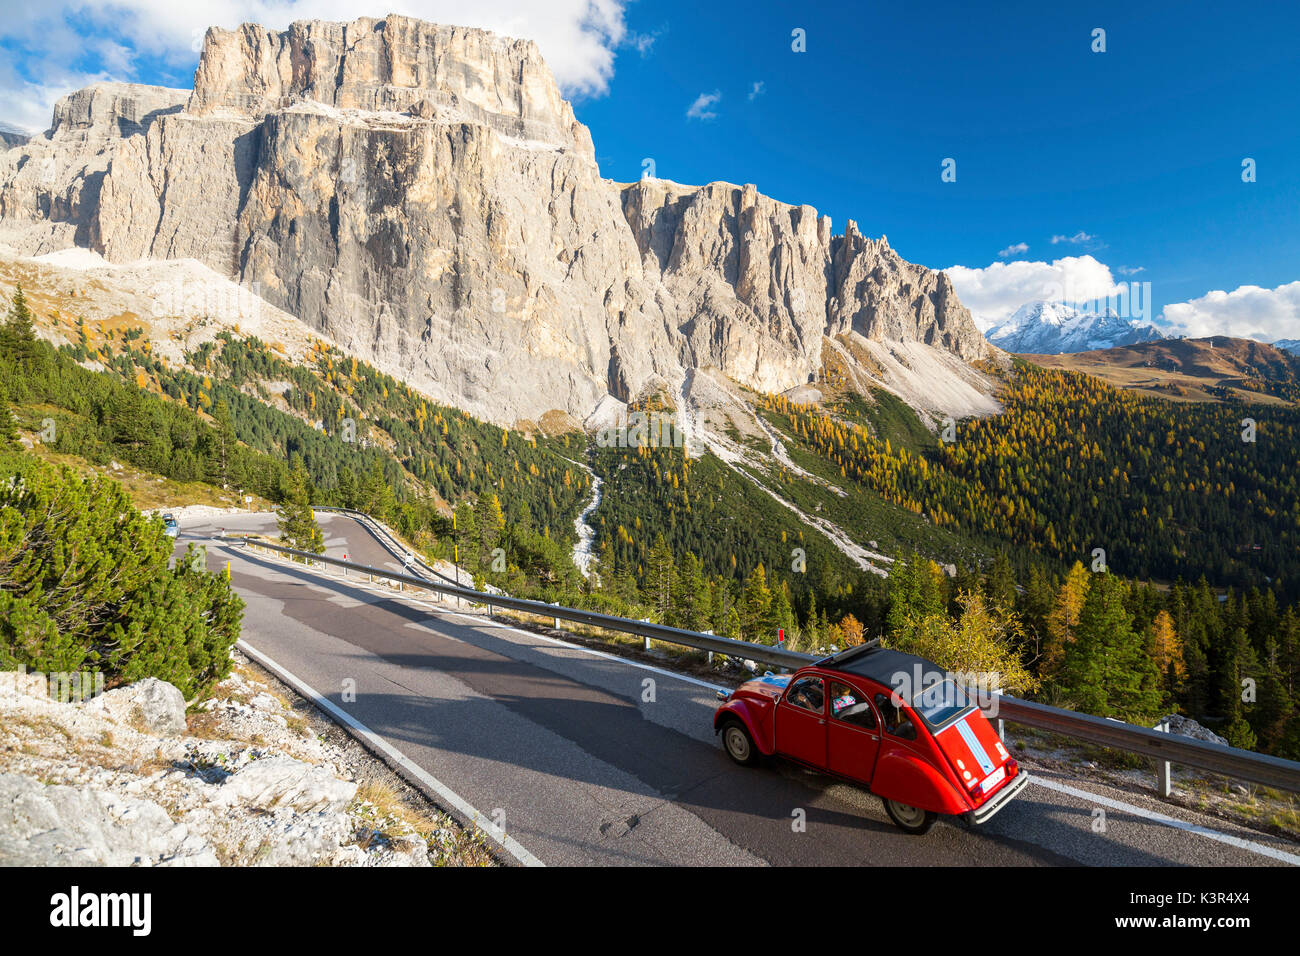 car italy autumn stock photos  u0026 car italy autumn stock images